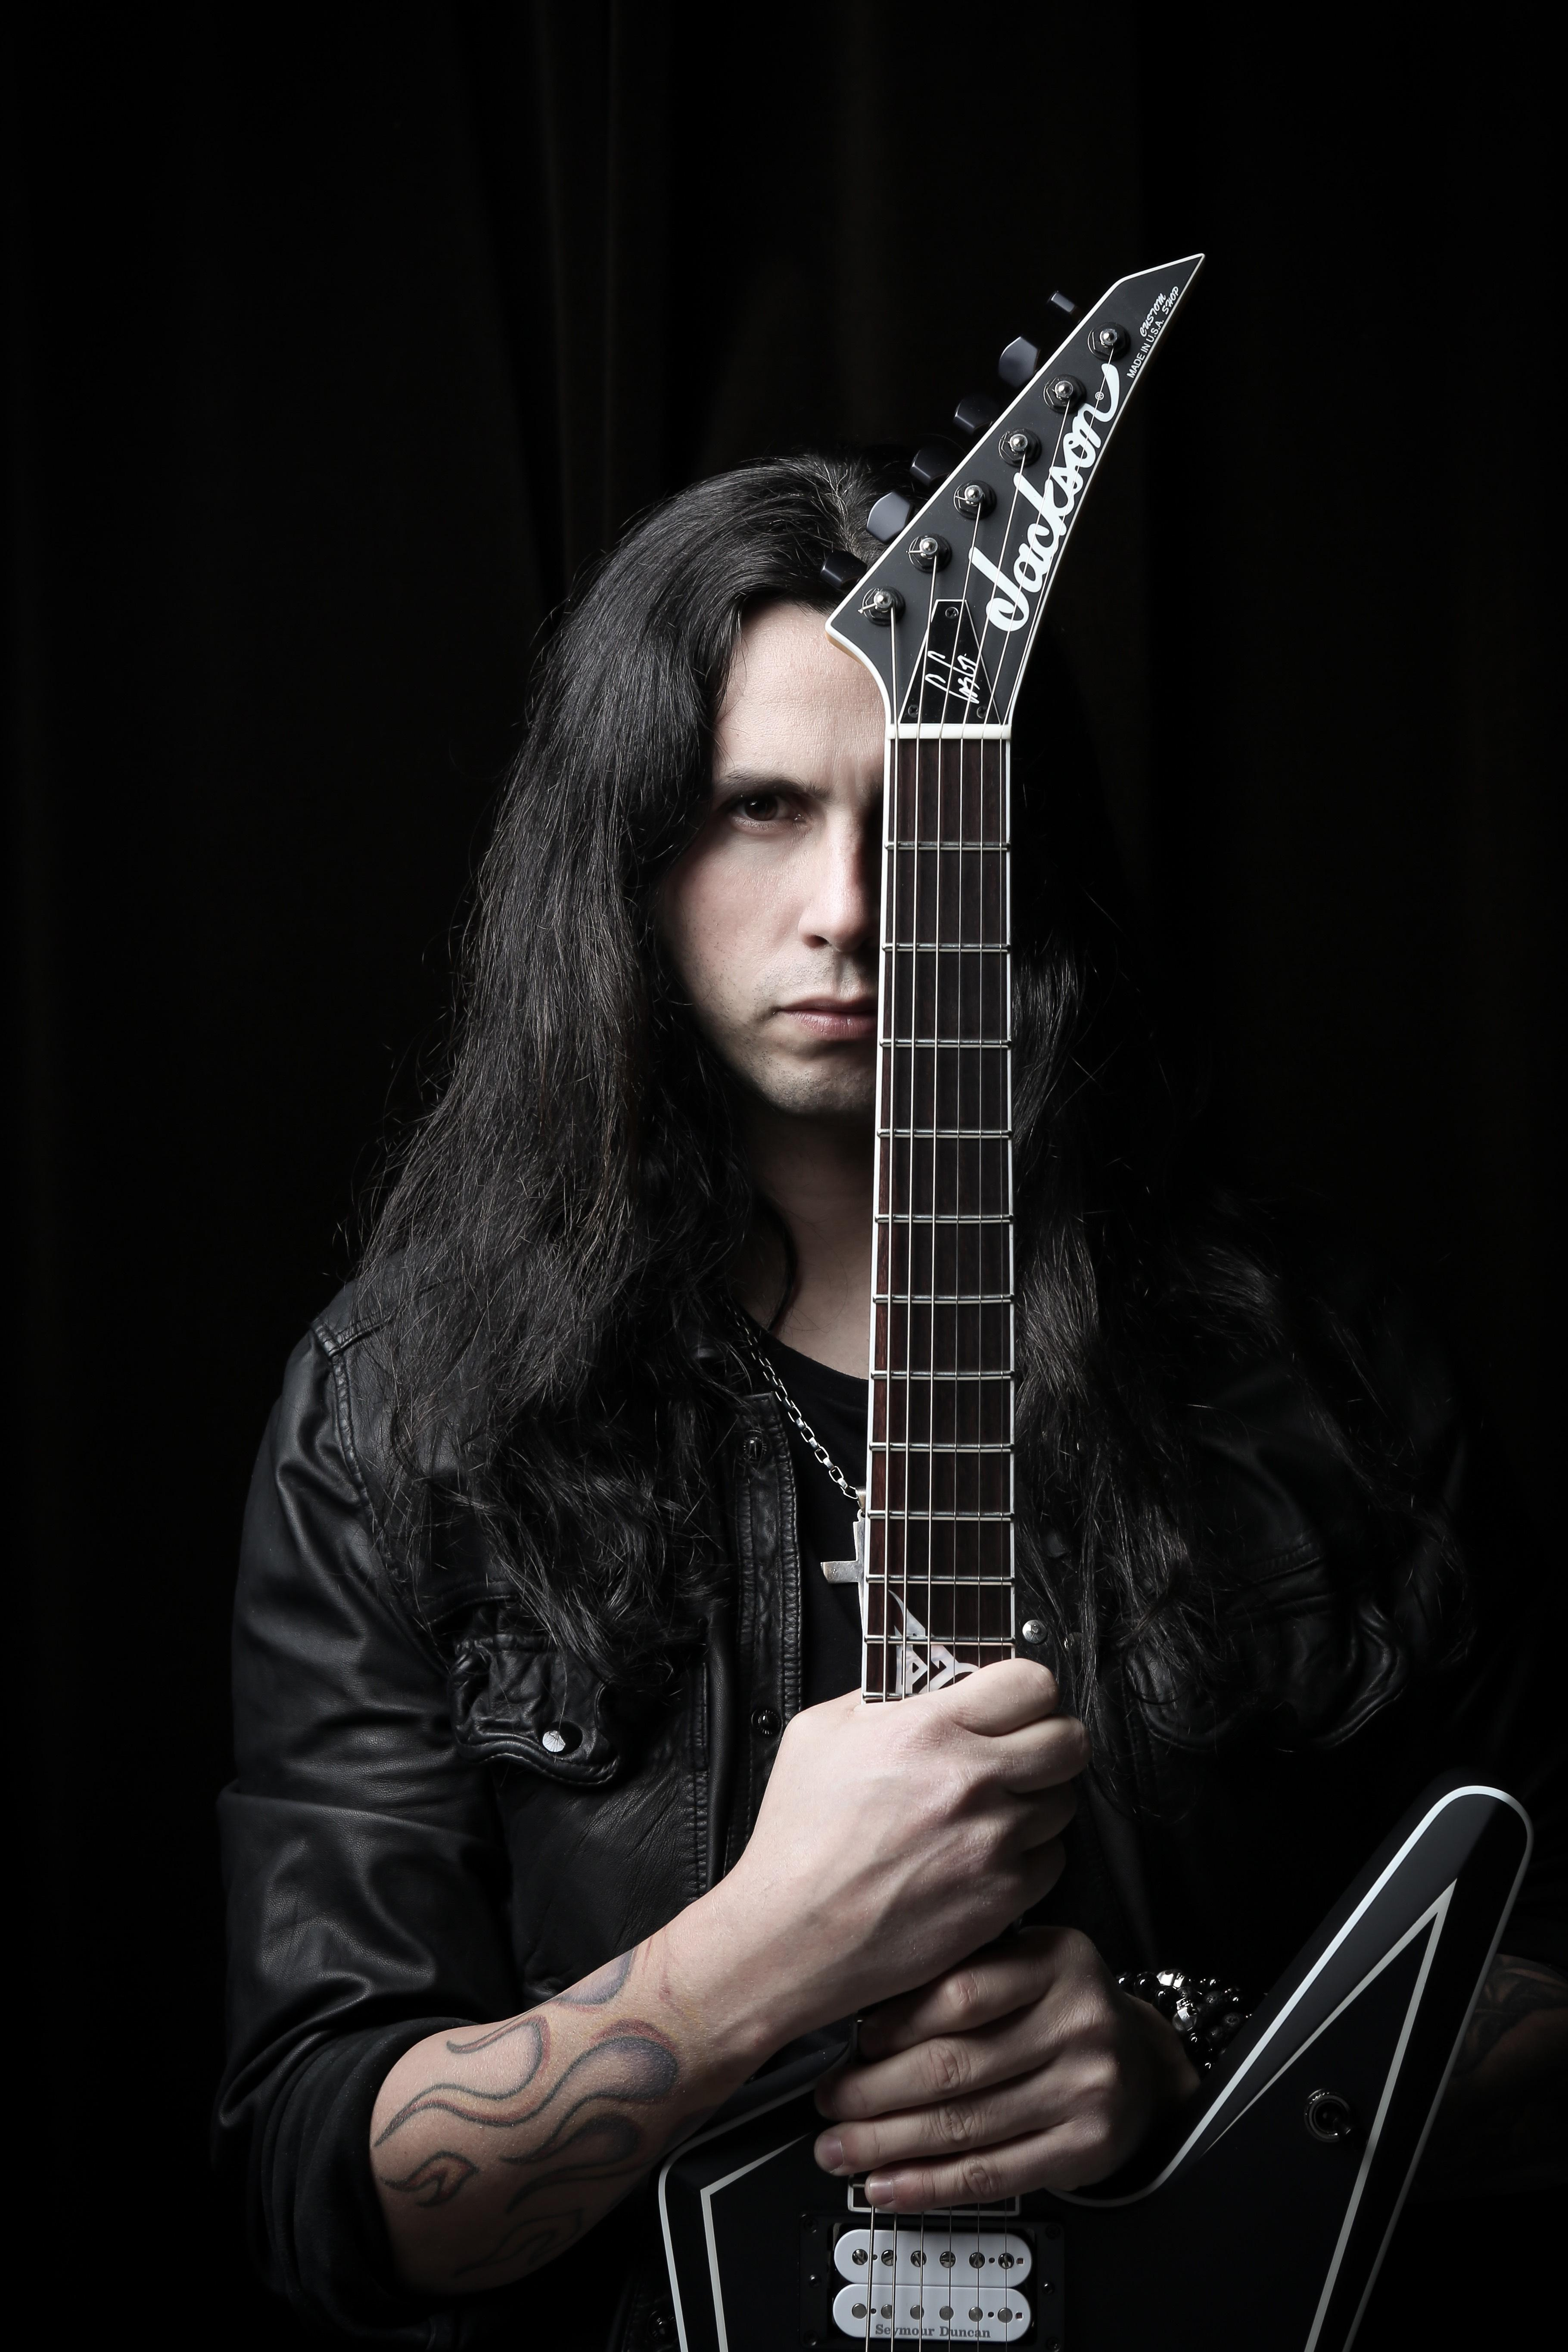 GUS G Poster